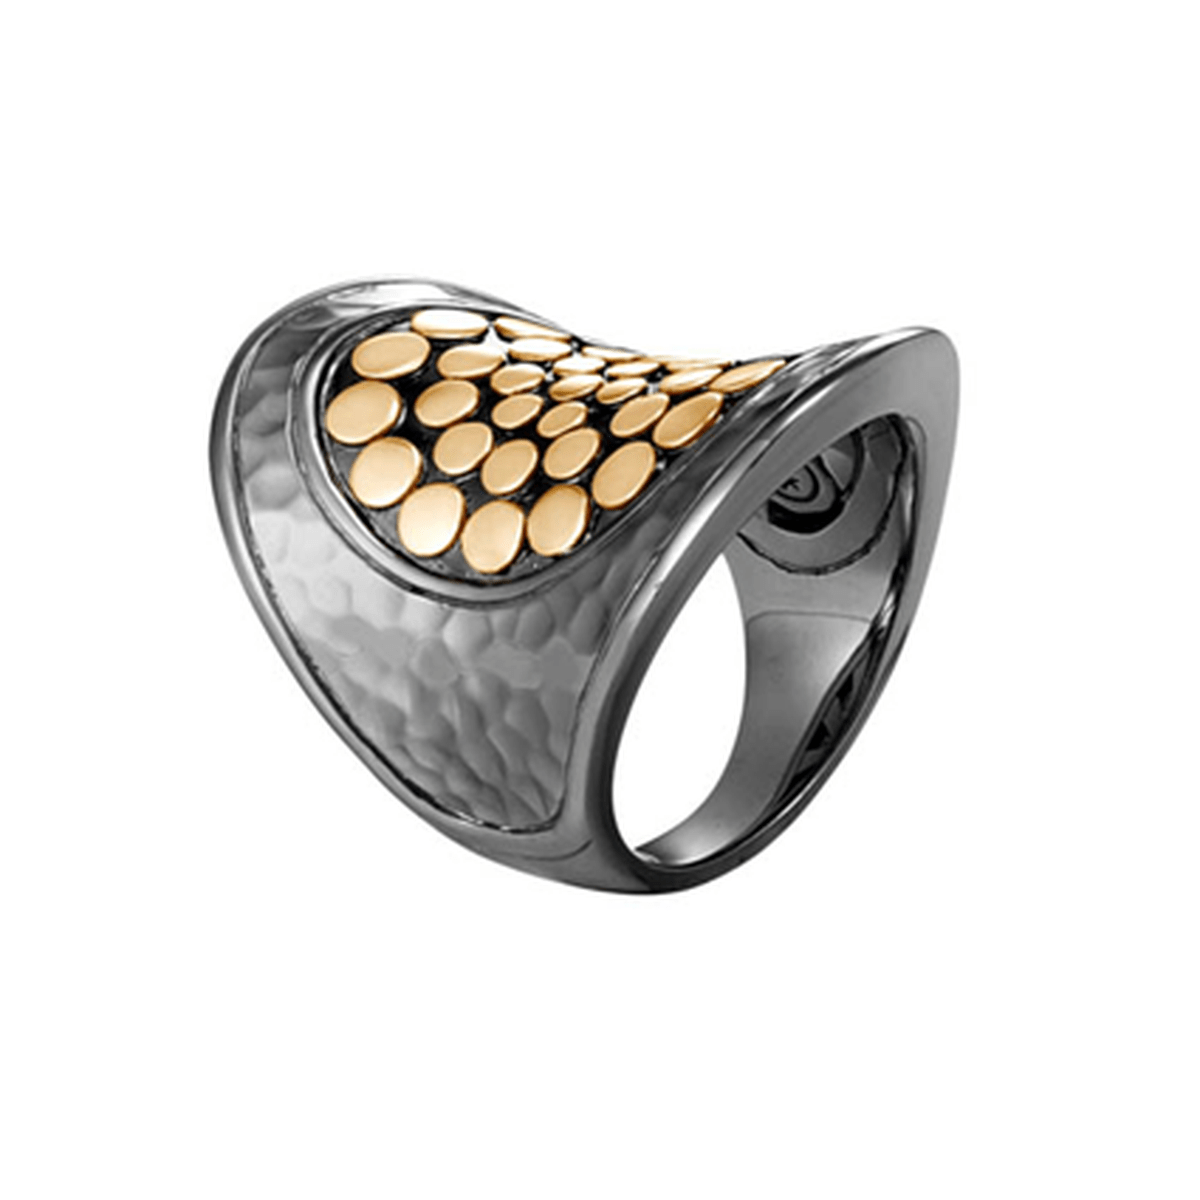 Dot Saddle Blackened Silver & 18K Gold Ring - RZ30007BRD-John Hardy-Renee Taylor Gallery